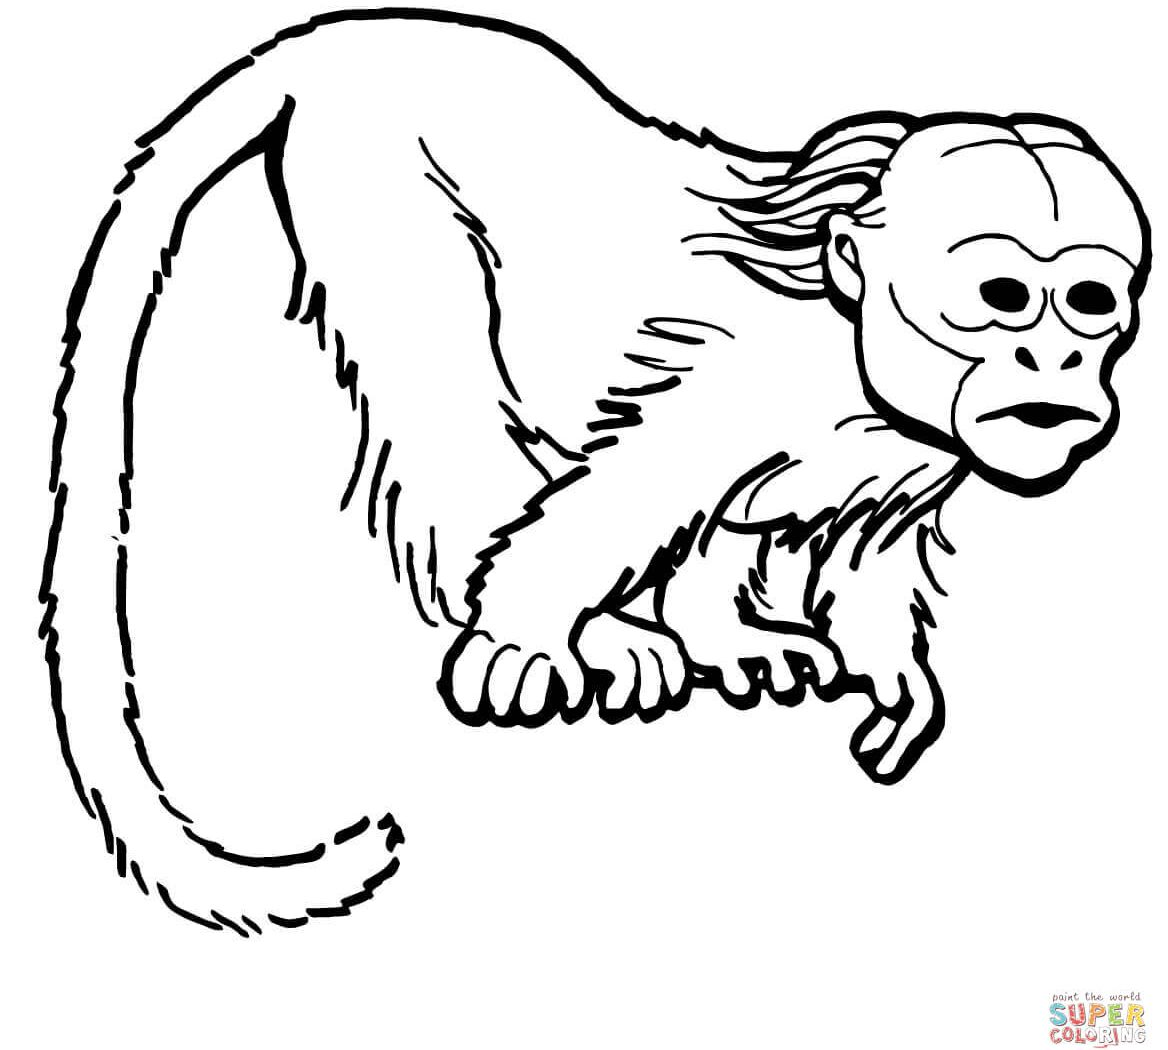 1168x1050 Mandrill Monkey Colorings For Kids Beautiful Baby Pigmy Marmoset